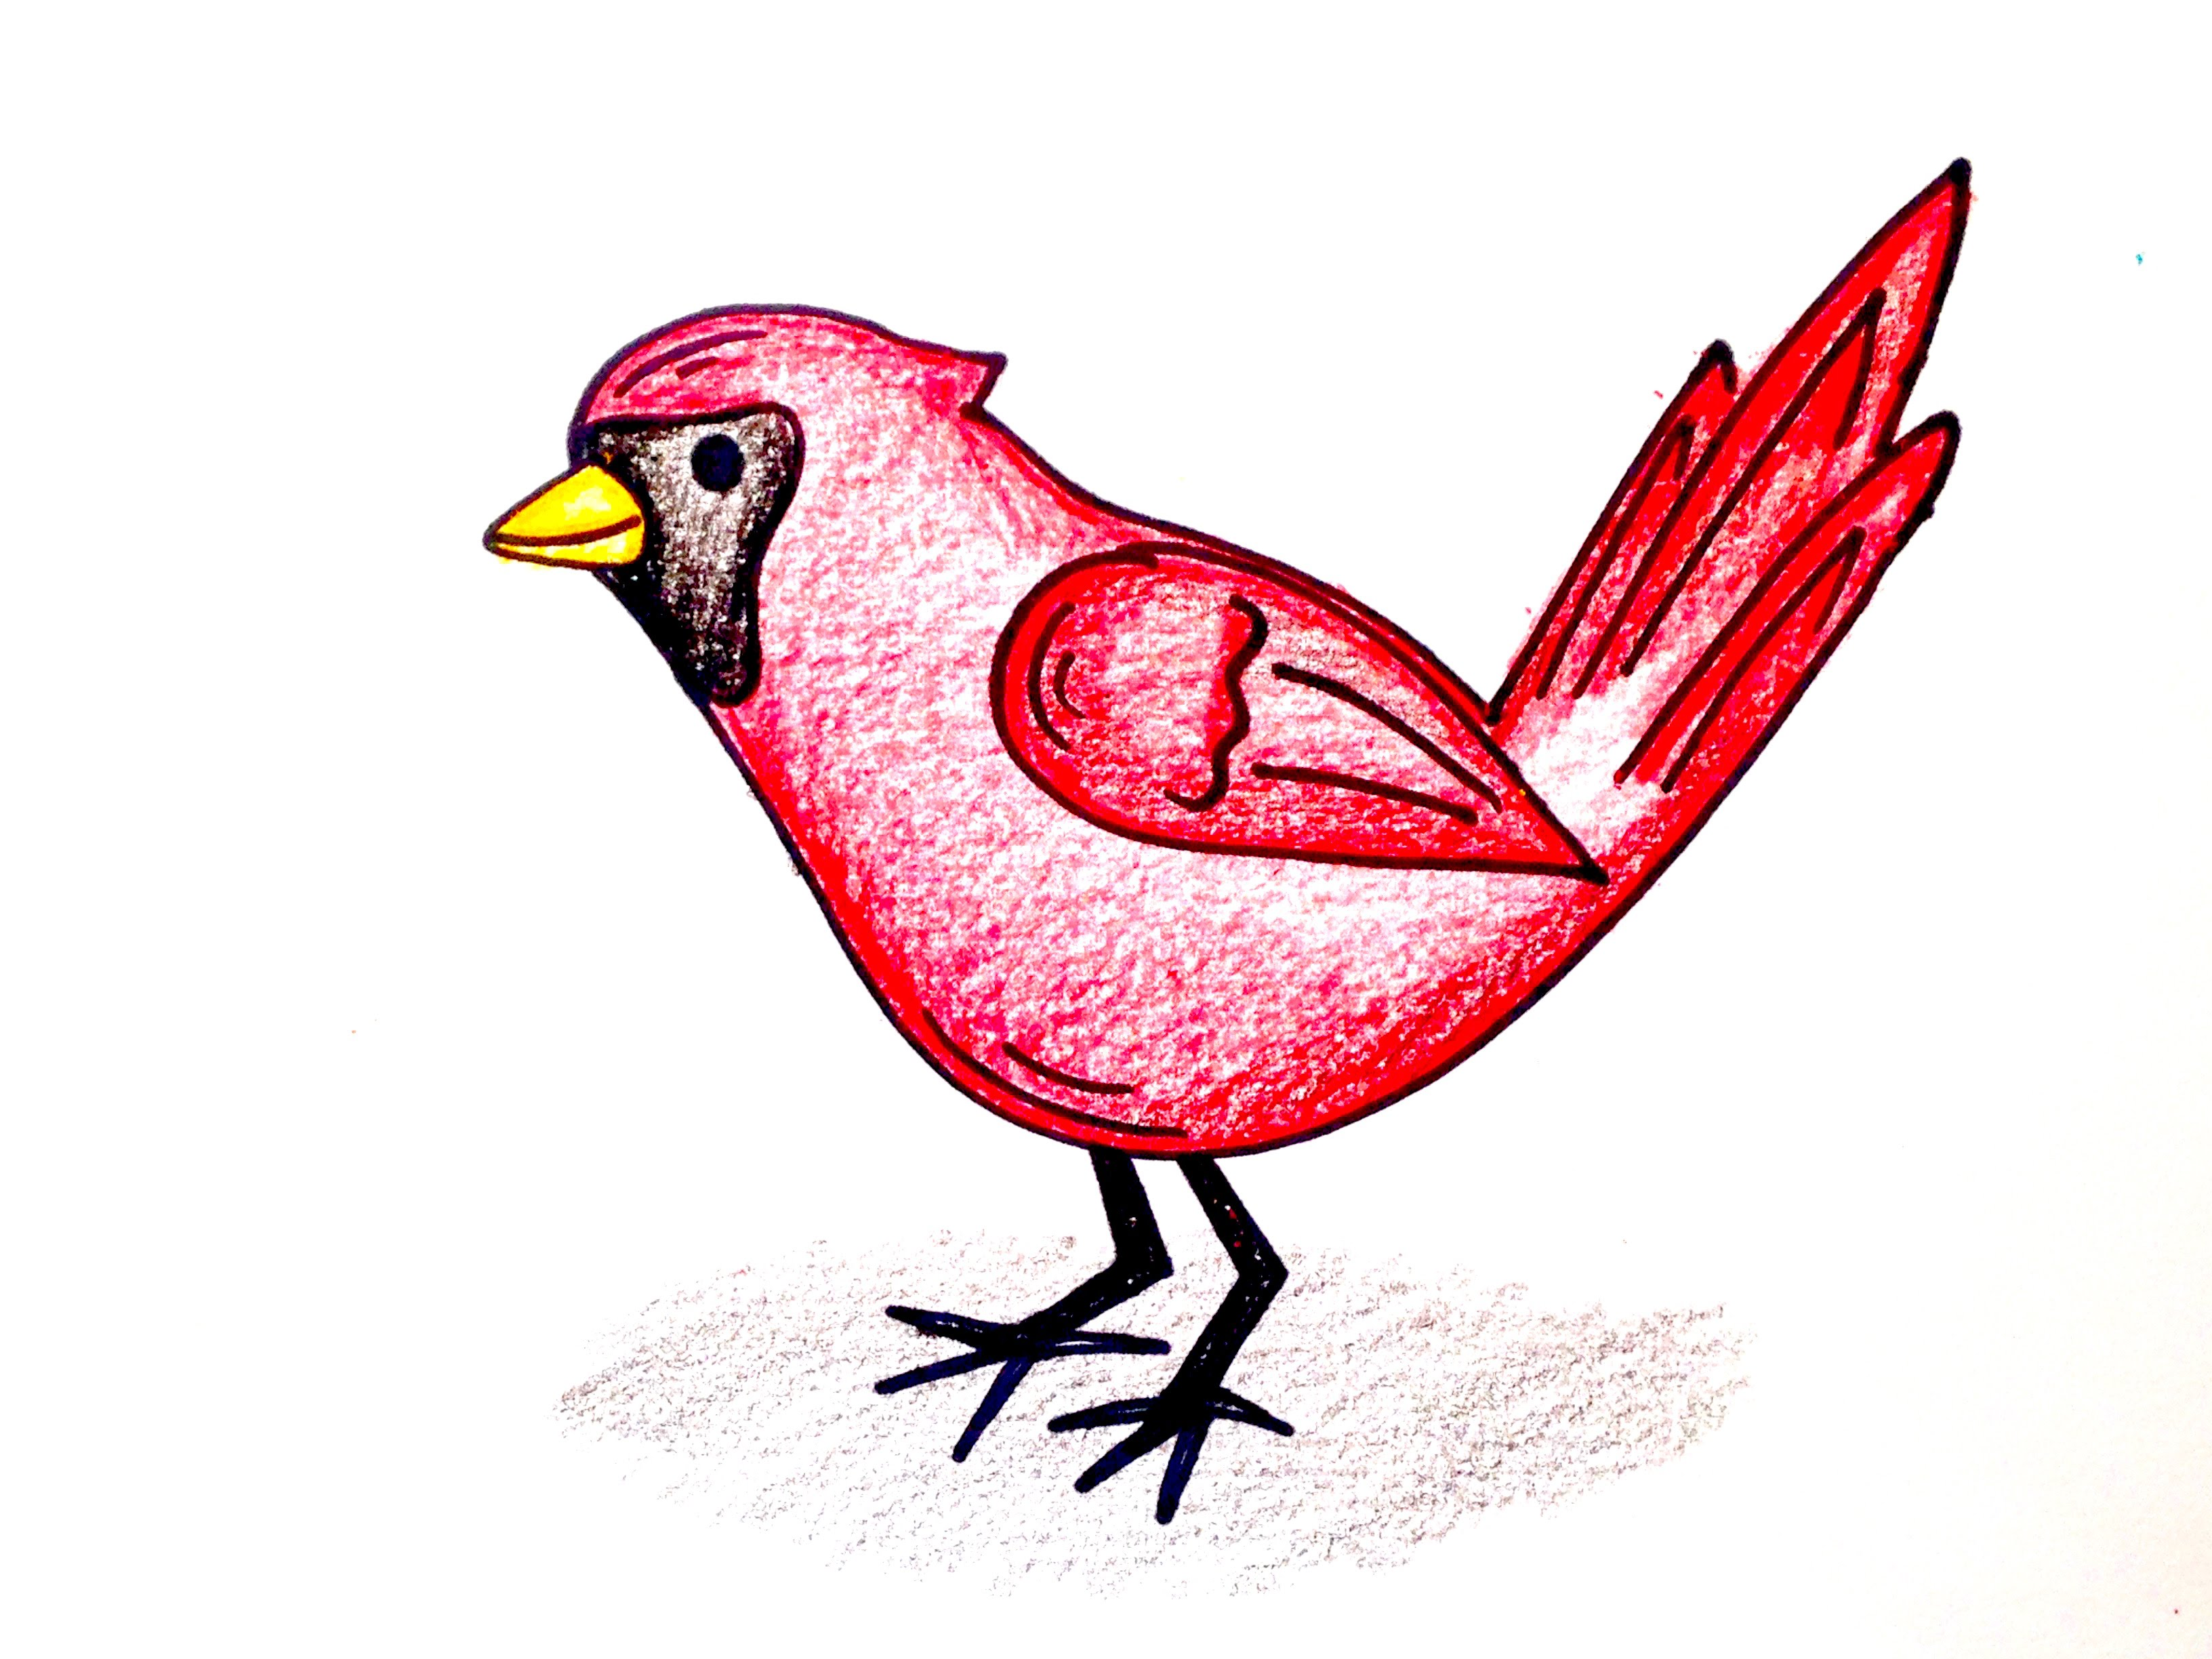 3264x2448 Drawing Lesson How To Draw A Cardinal